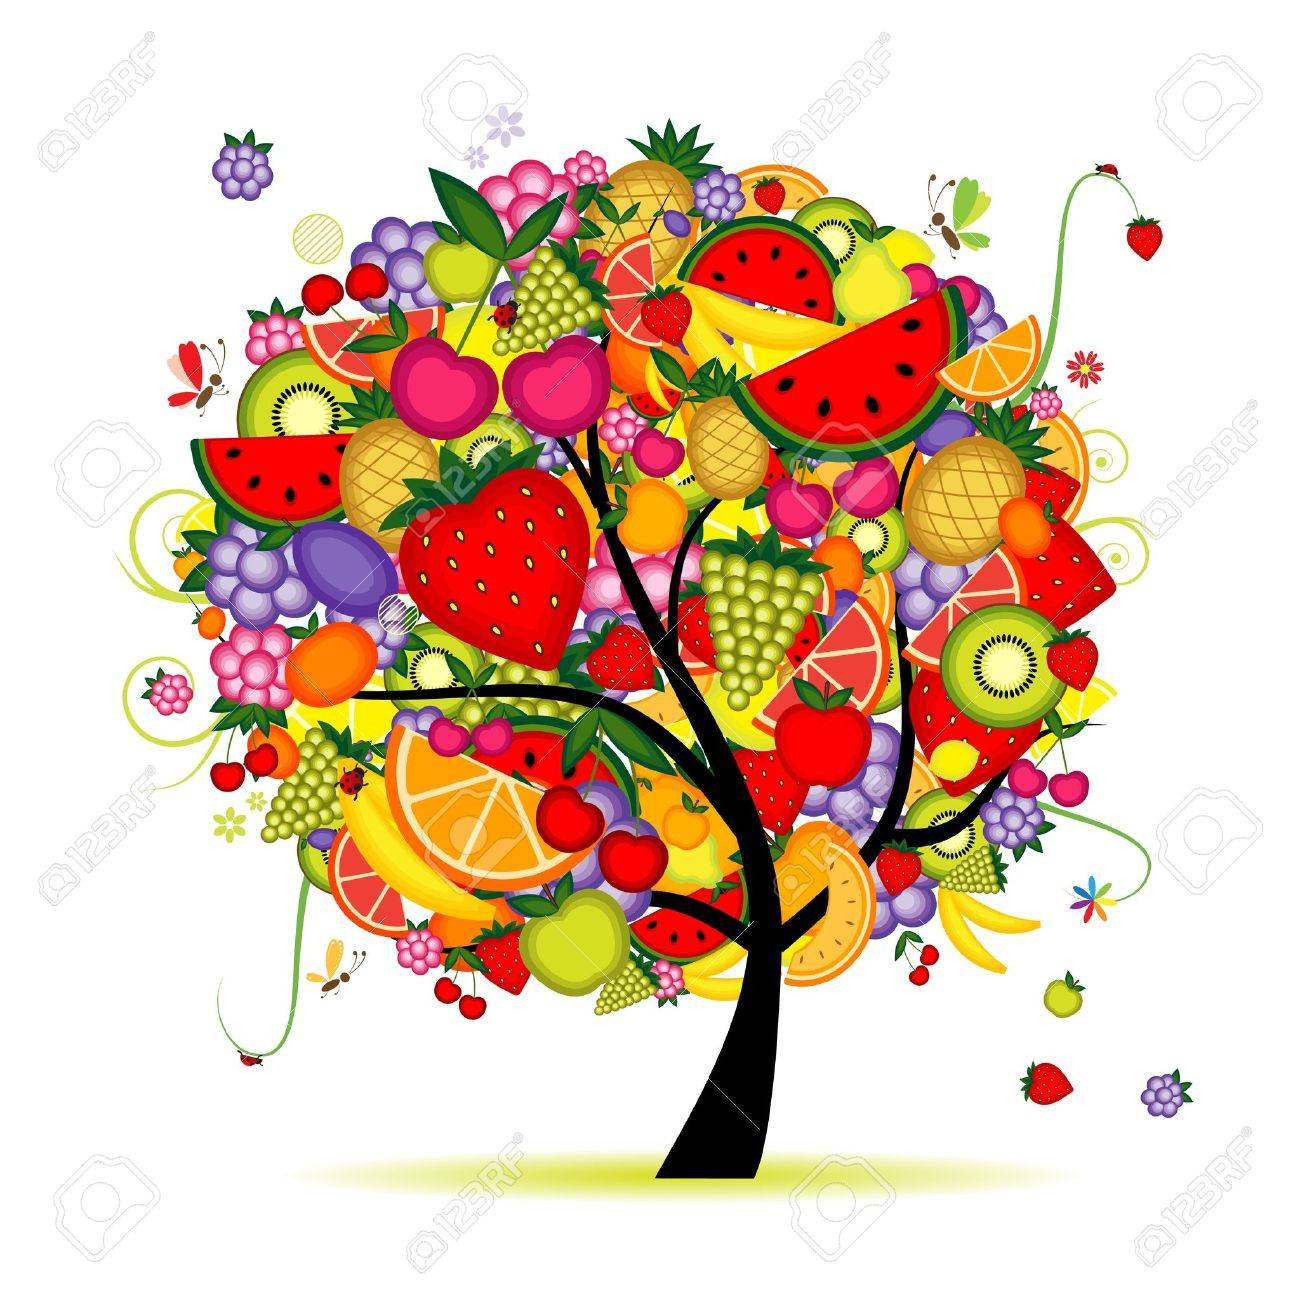 Energy fruit tree for your design Stock Vector - 8362550